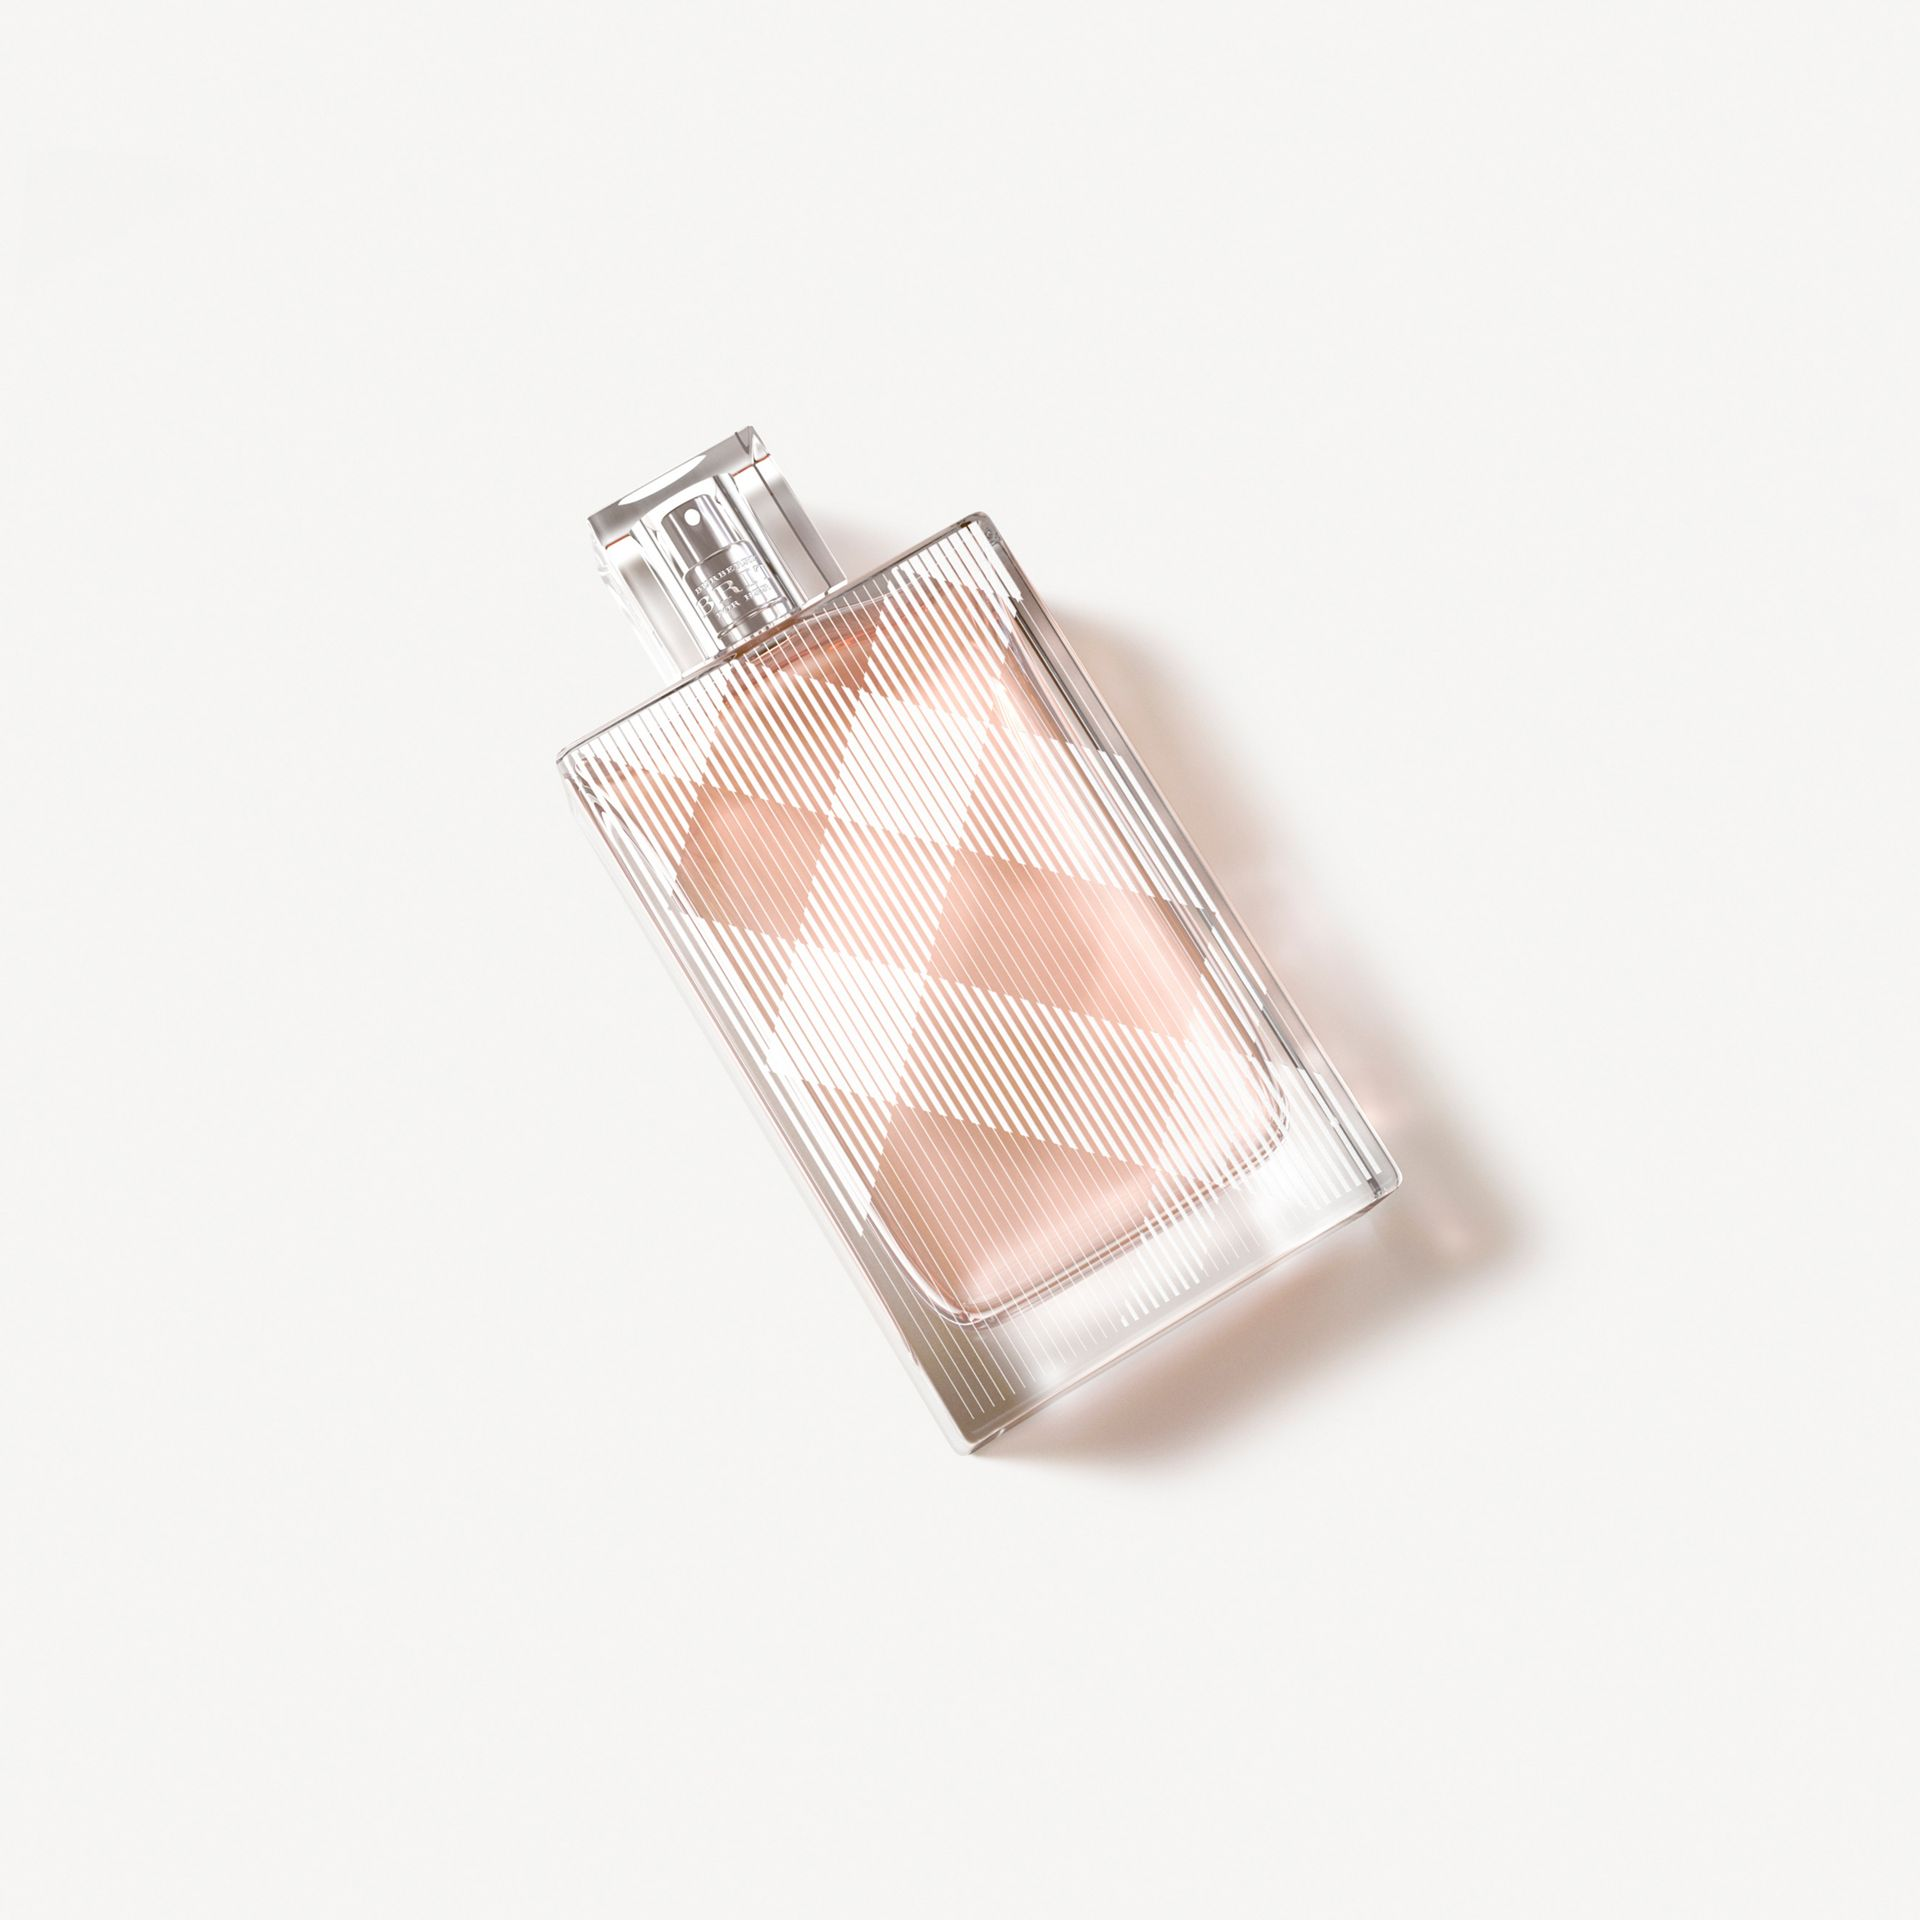 Burberry Brit For Her Eau de Toilette 100 ml - immagine della galleria 1